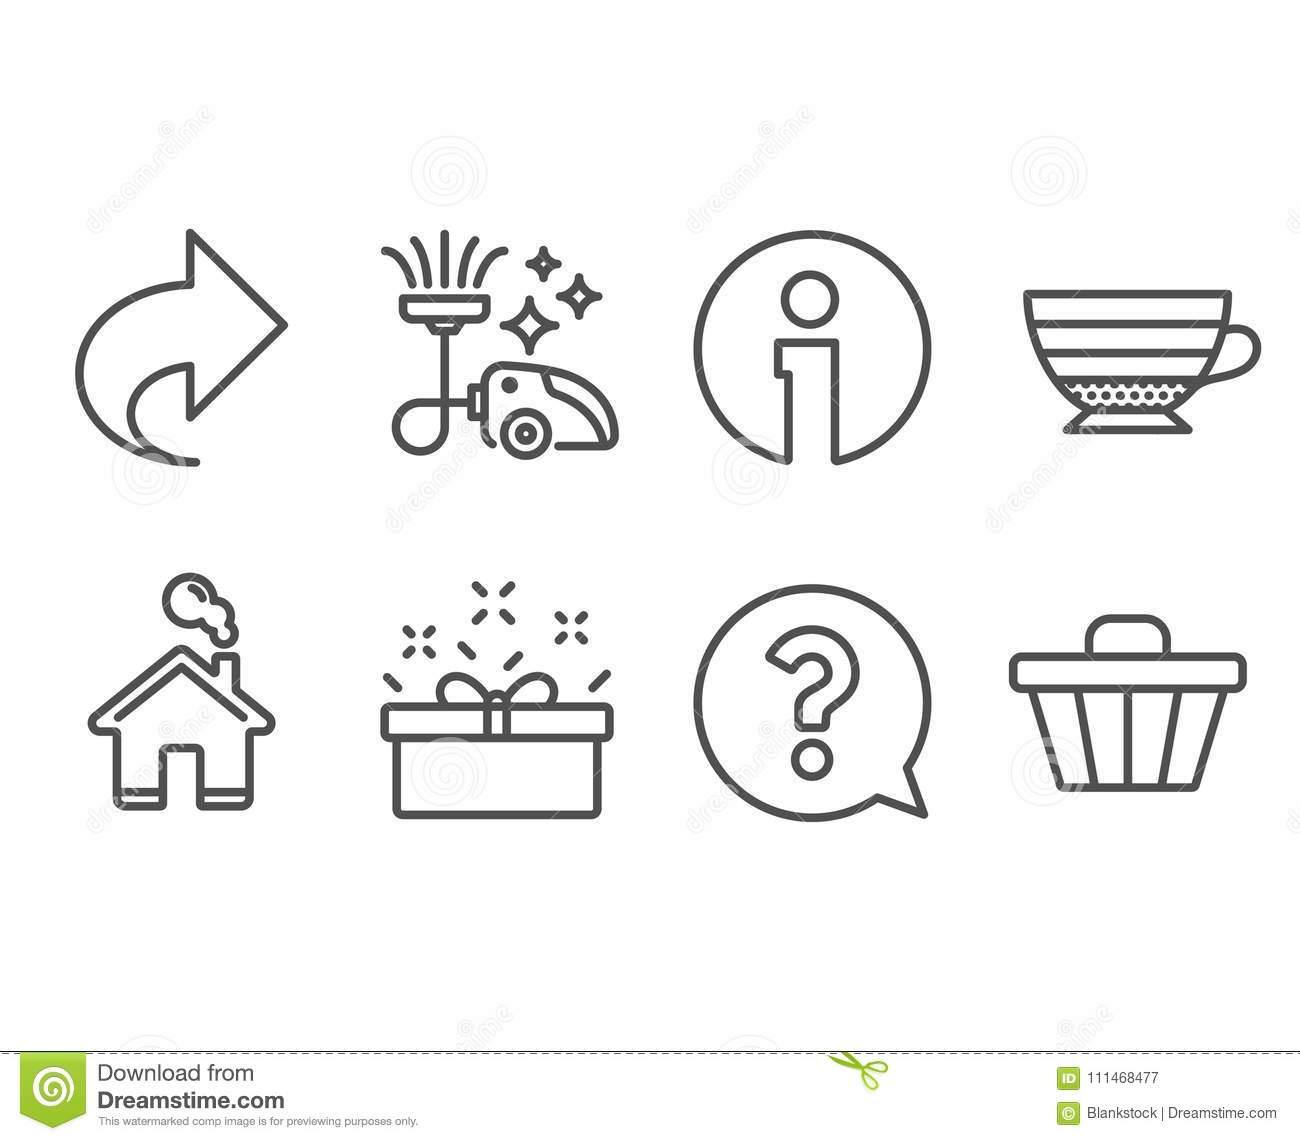 share cappuccino and vacuum cleaner icons question mark present